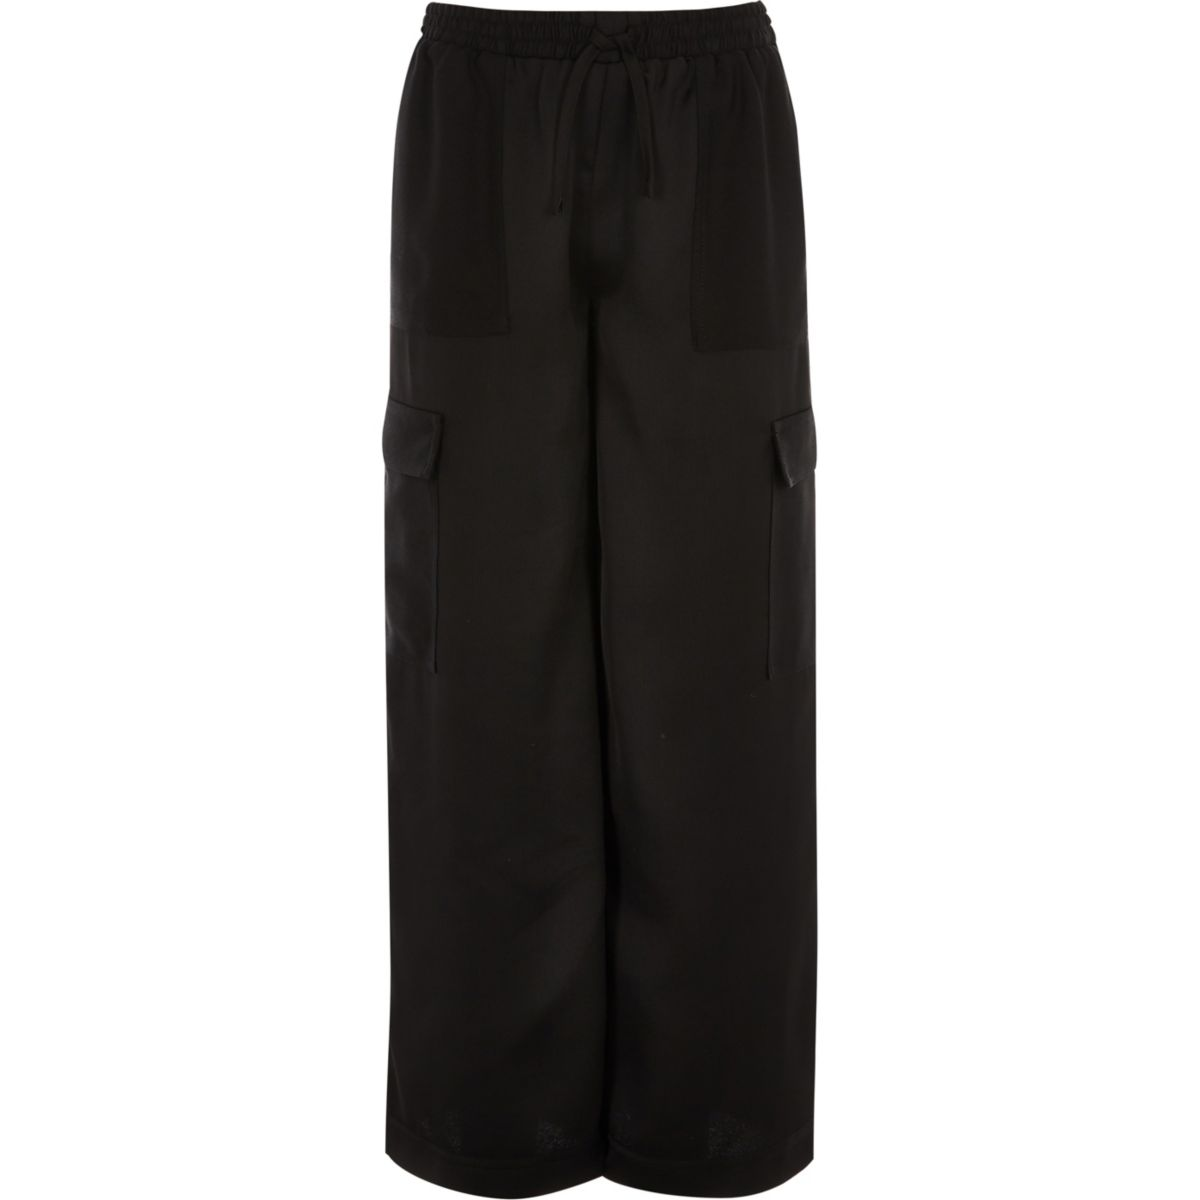 Girls black wide leg cargo pants